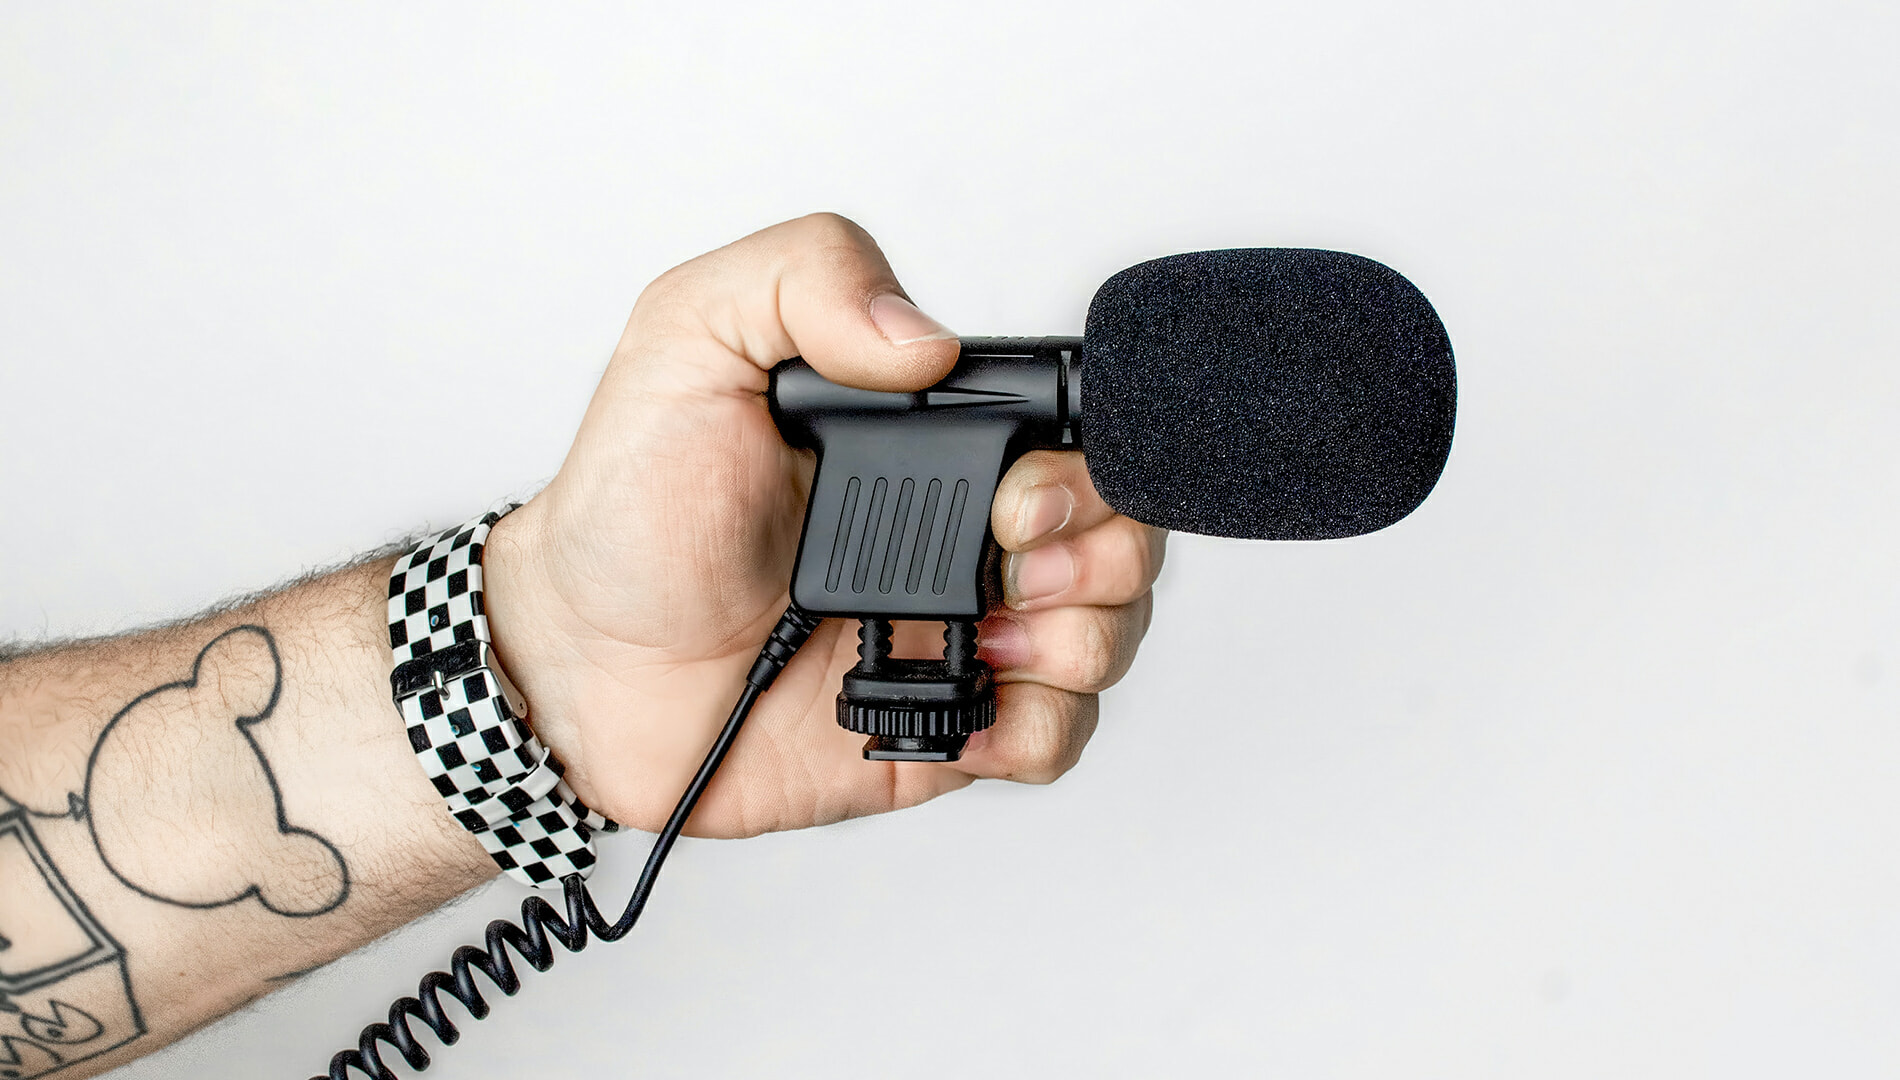 Hand microphone on a man's hand with tattoos and black-and-white wrist watch